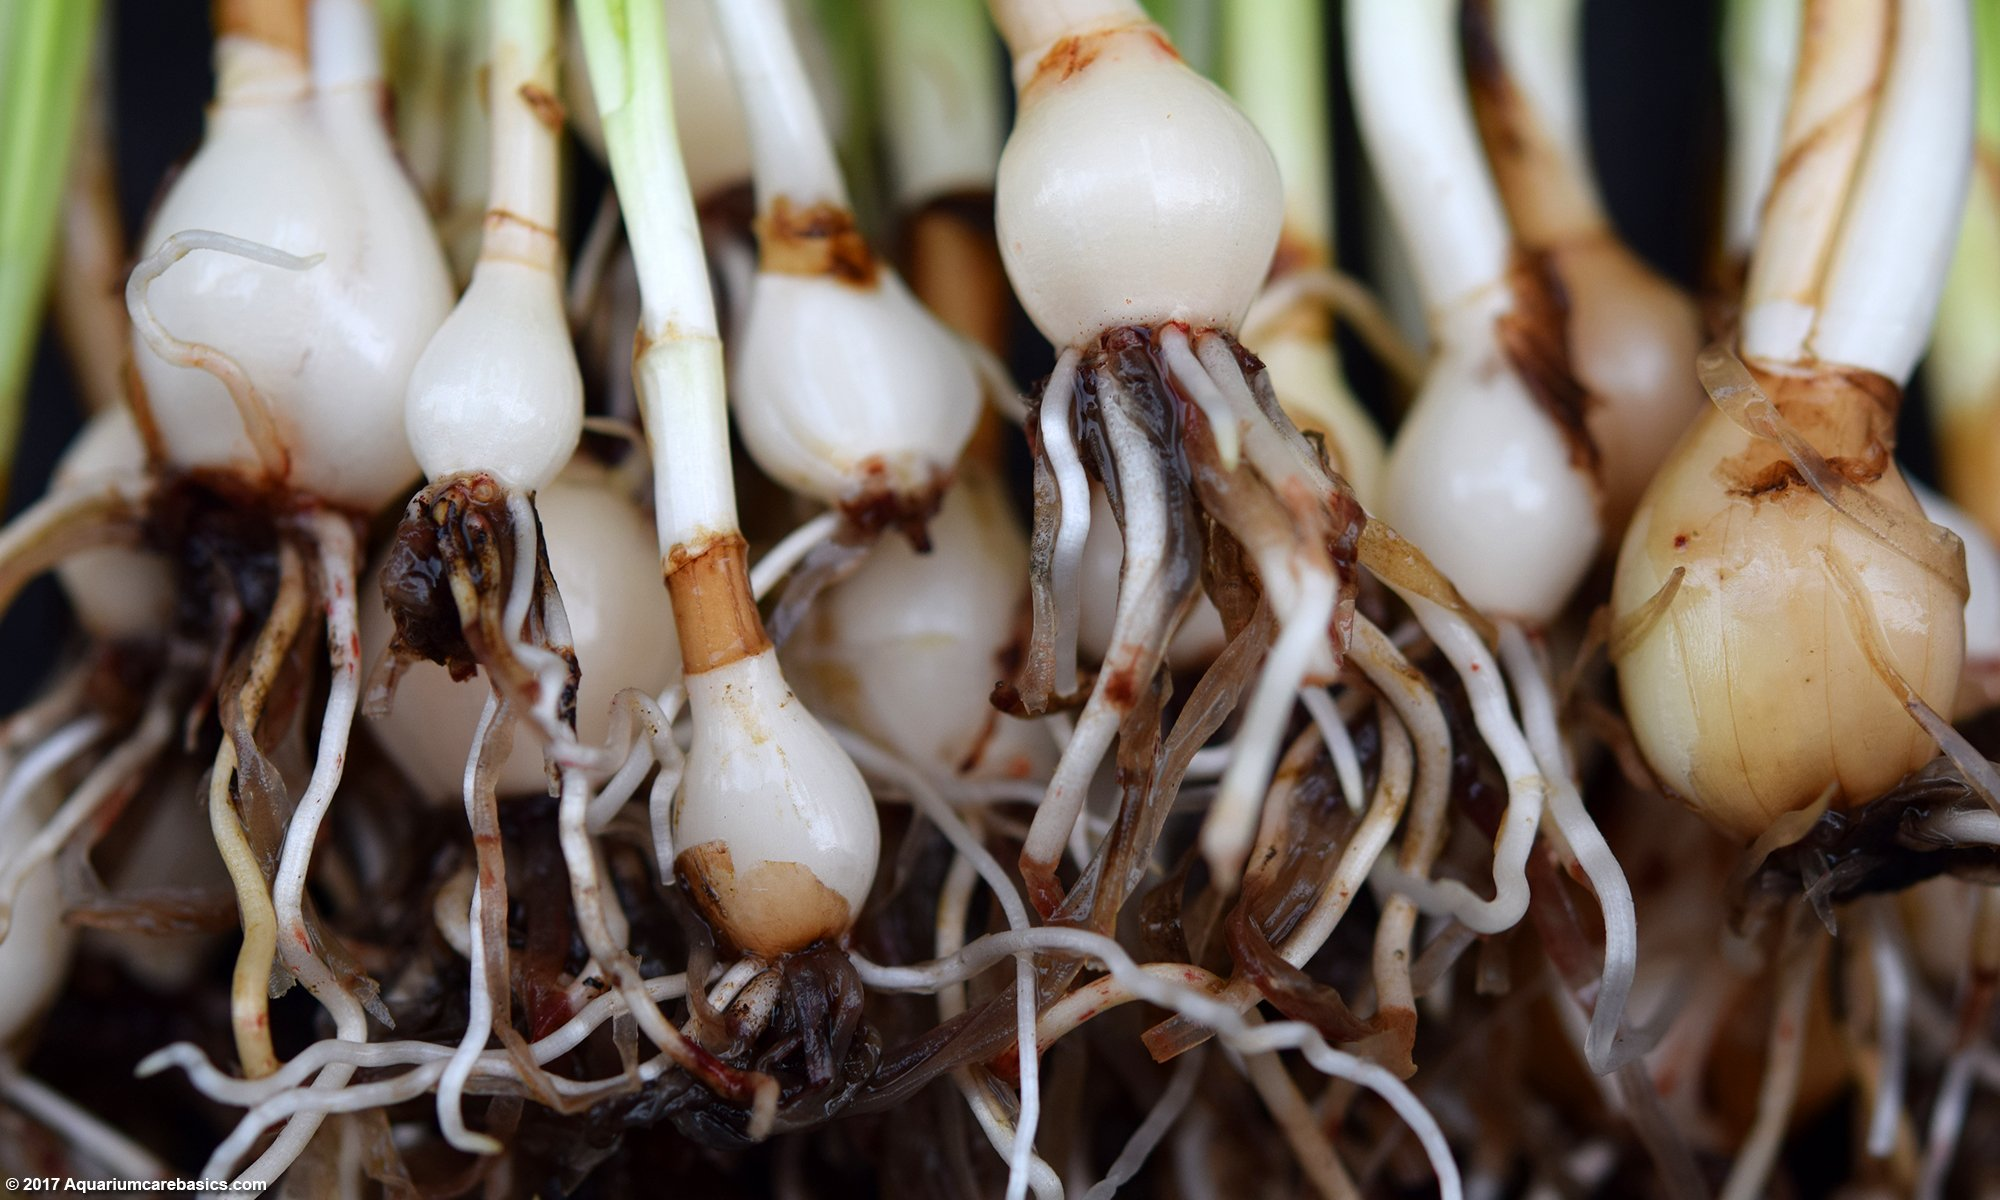 Dwarf Onion Plant: Stems, Bulbs And Roots